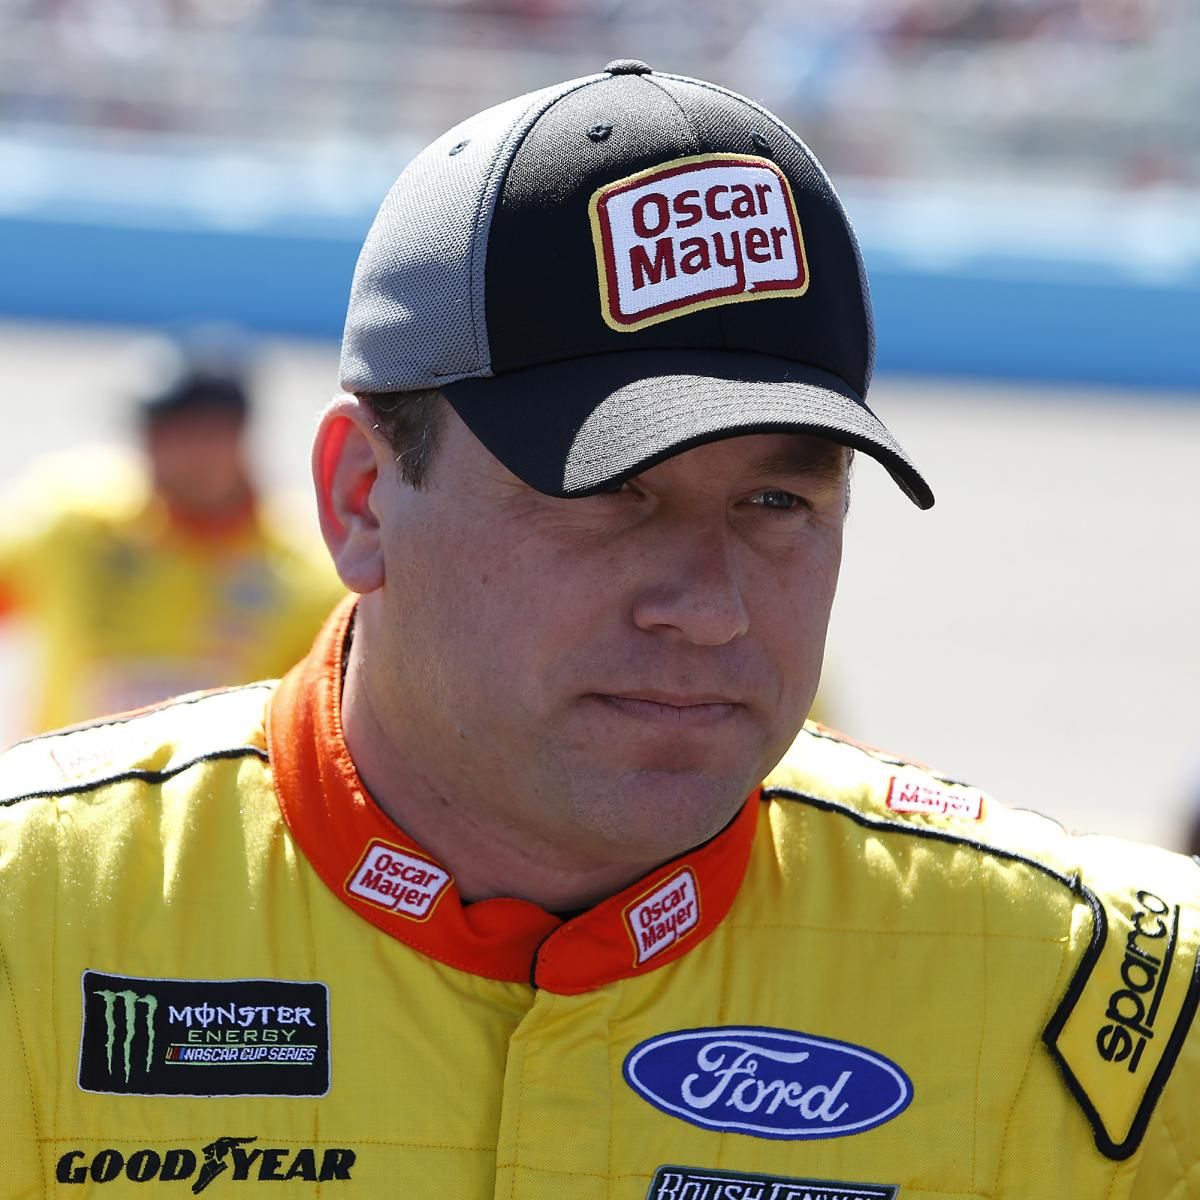 Ryan Newman Awake, 'Speaking with Family and Doctors' After Daytona 500 Crash